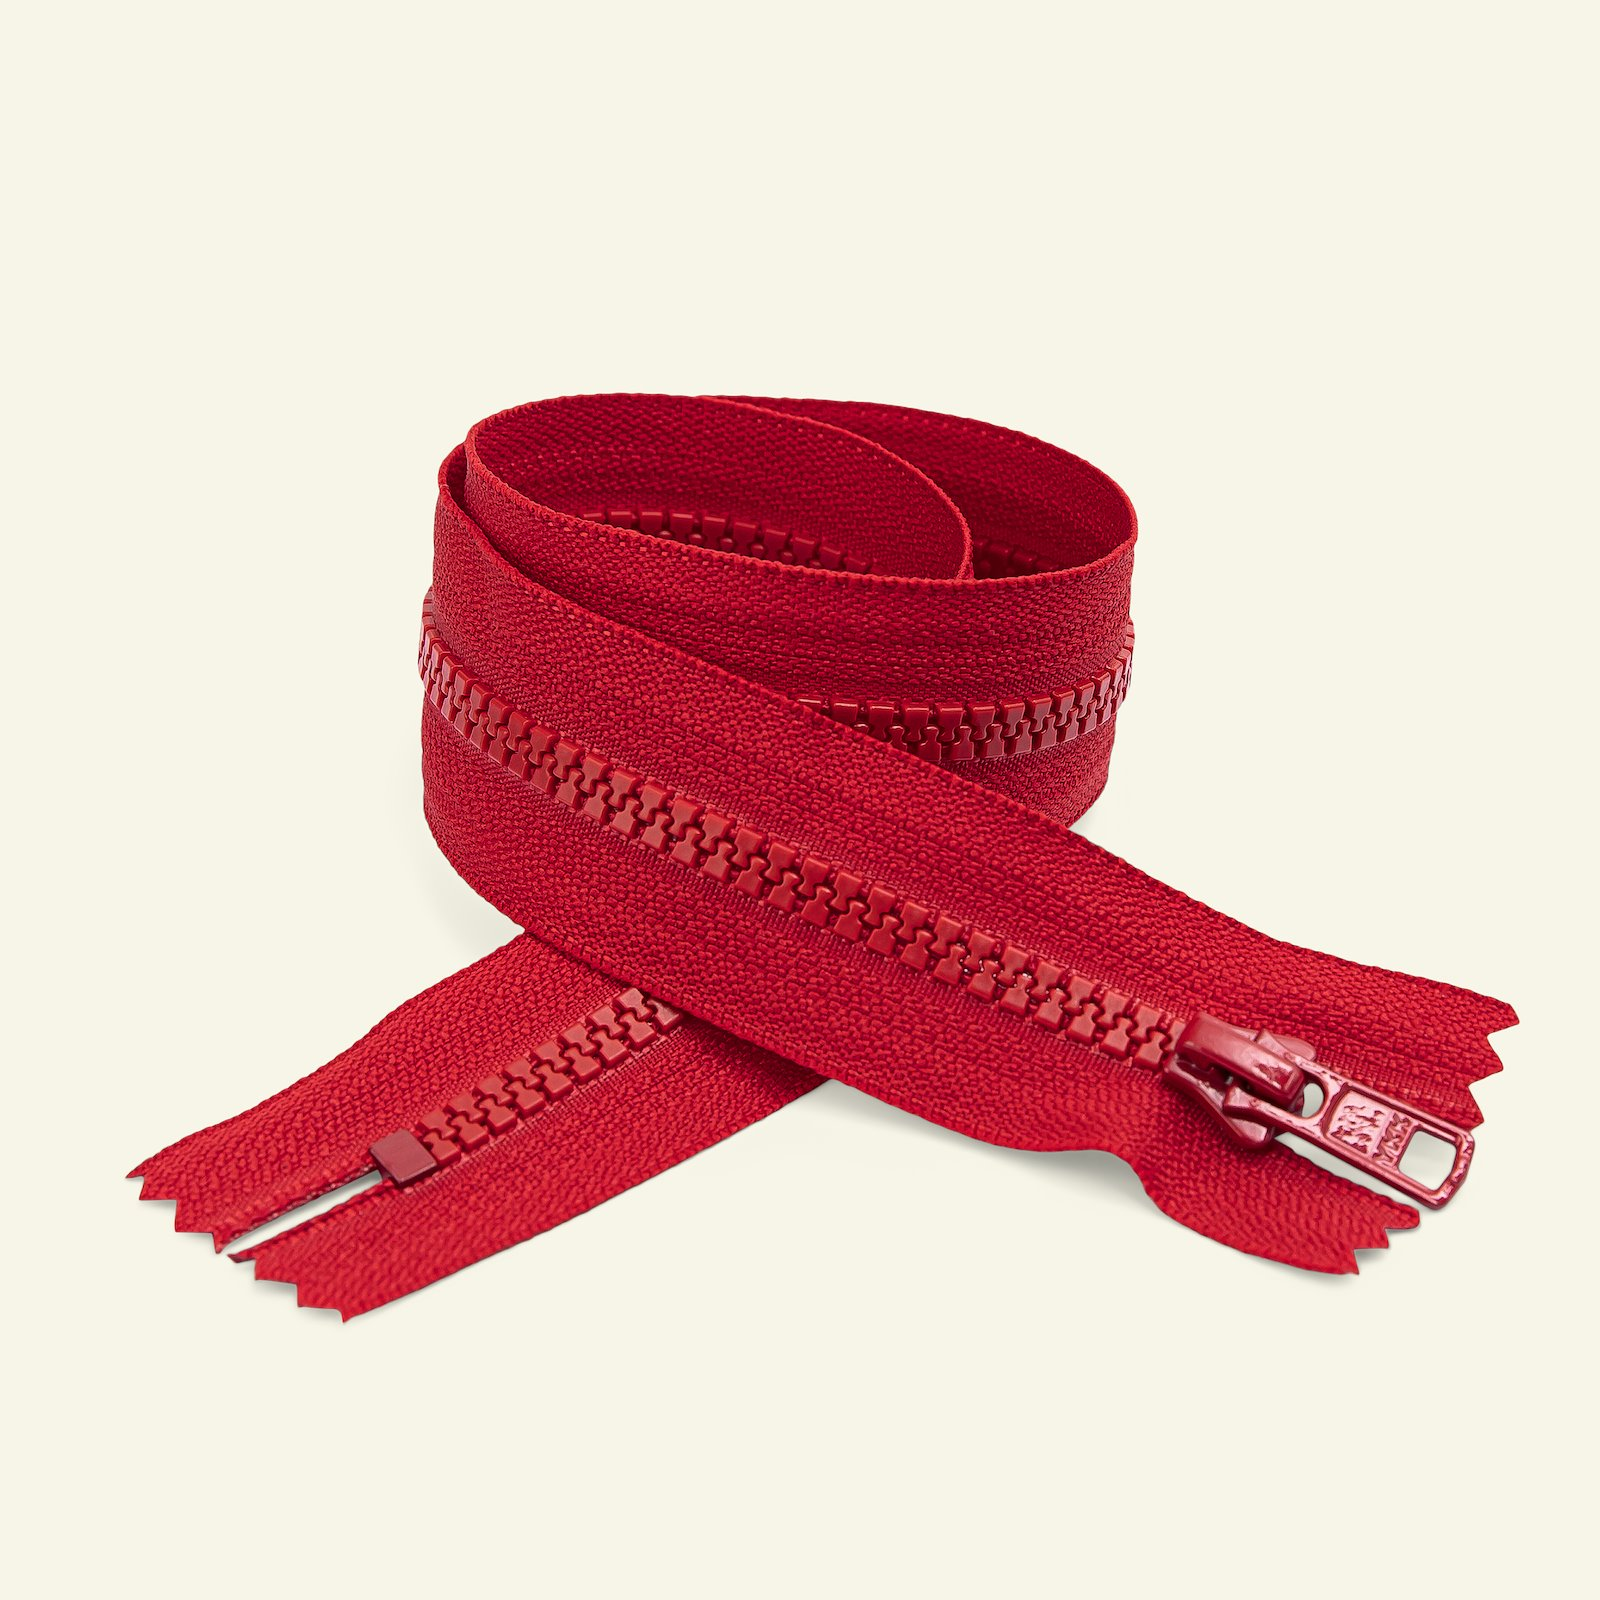 YKK zip 6mm closed end 40cm red x50111_pack